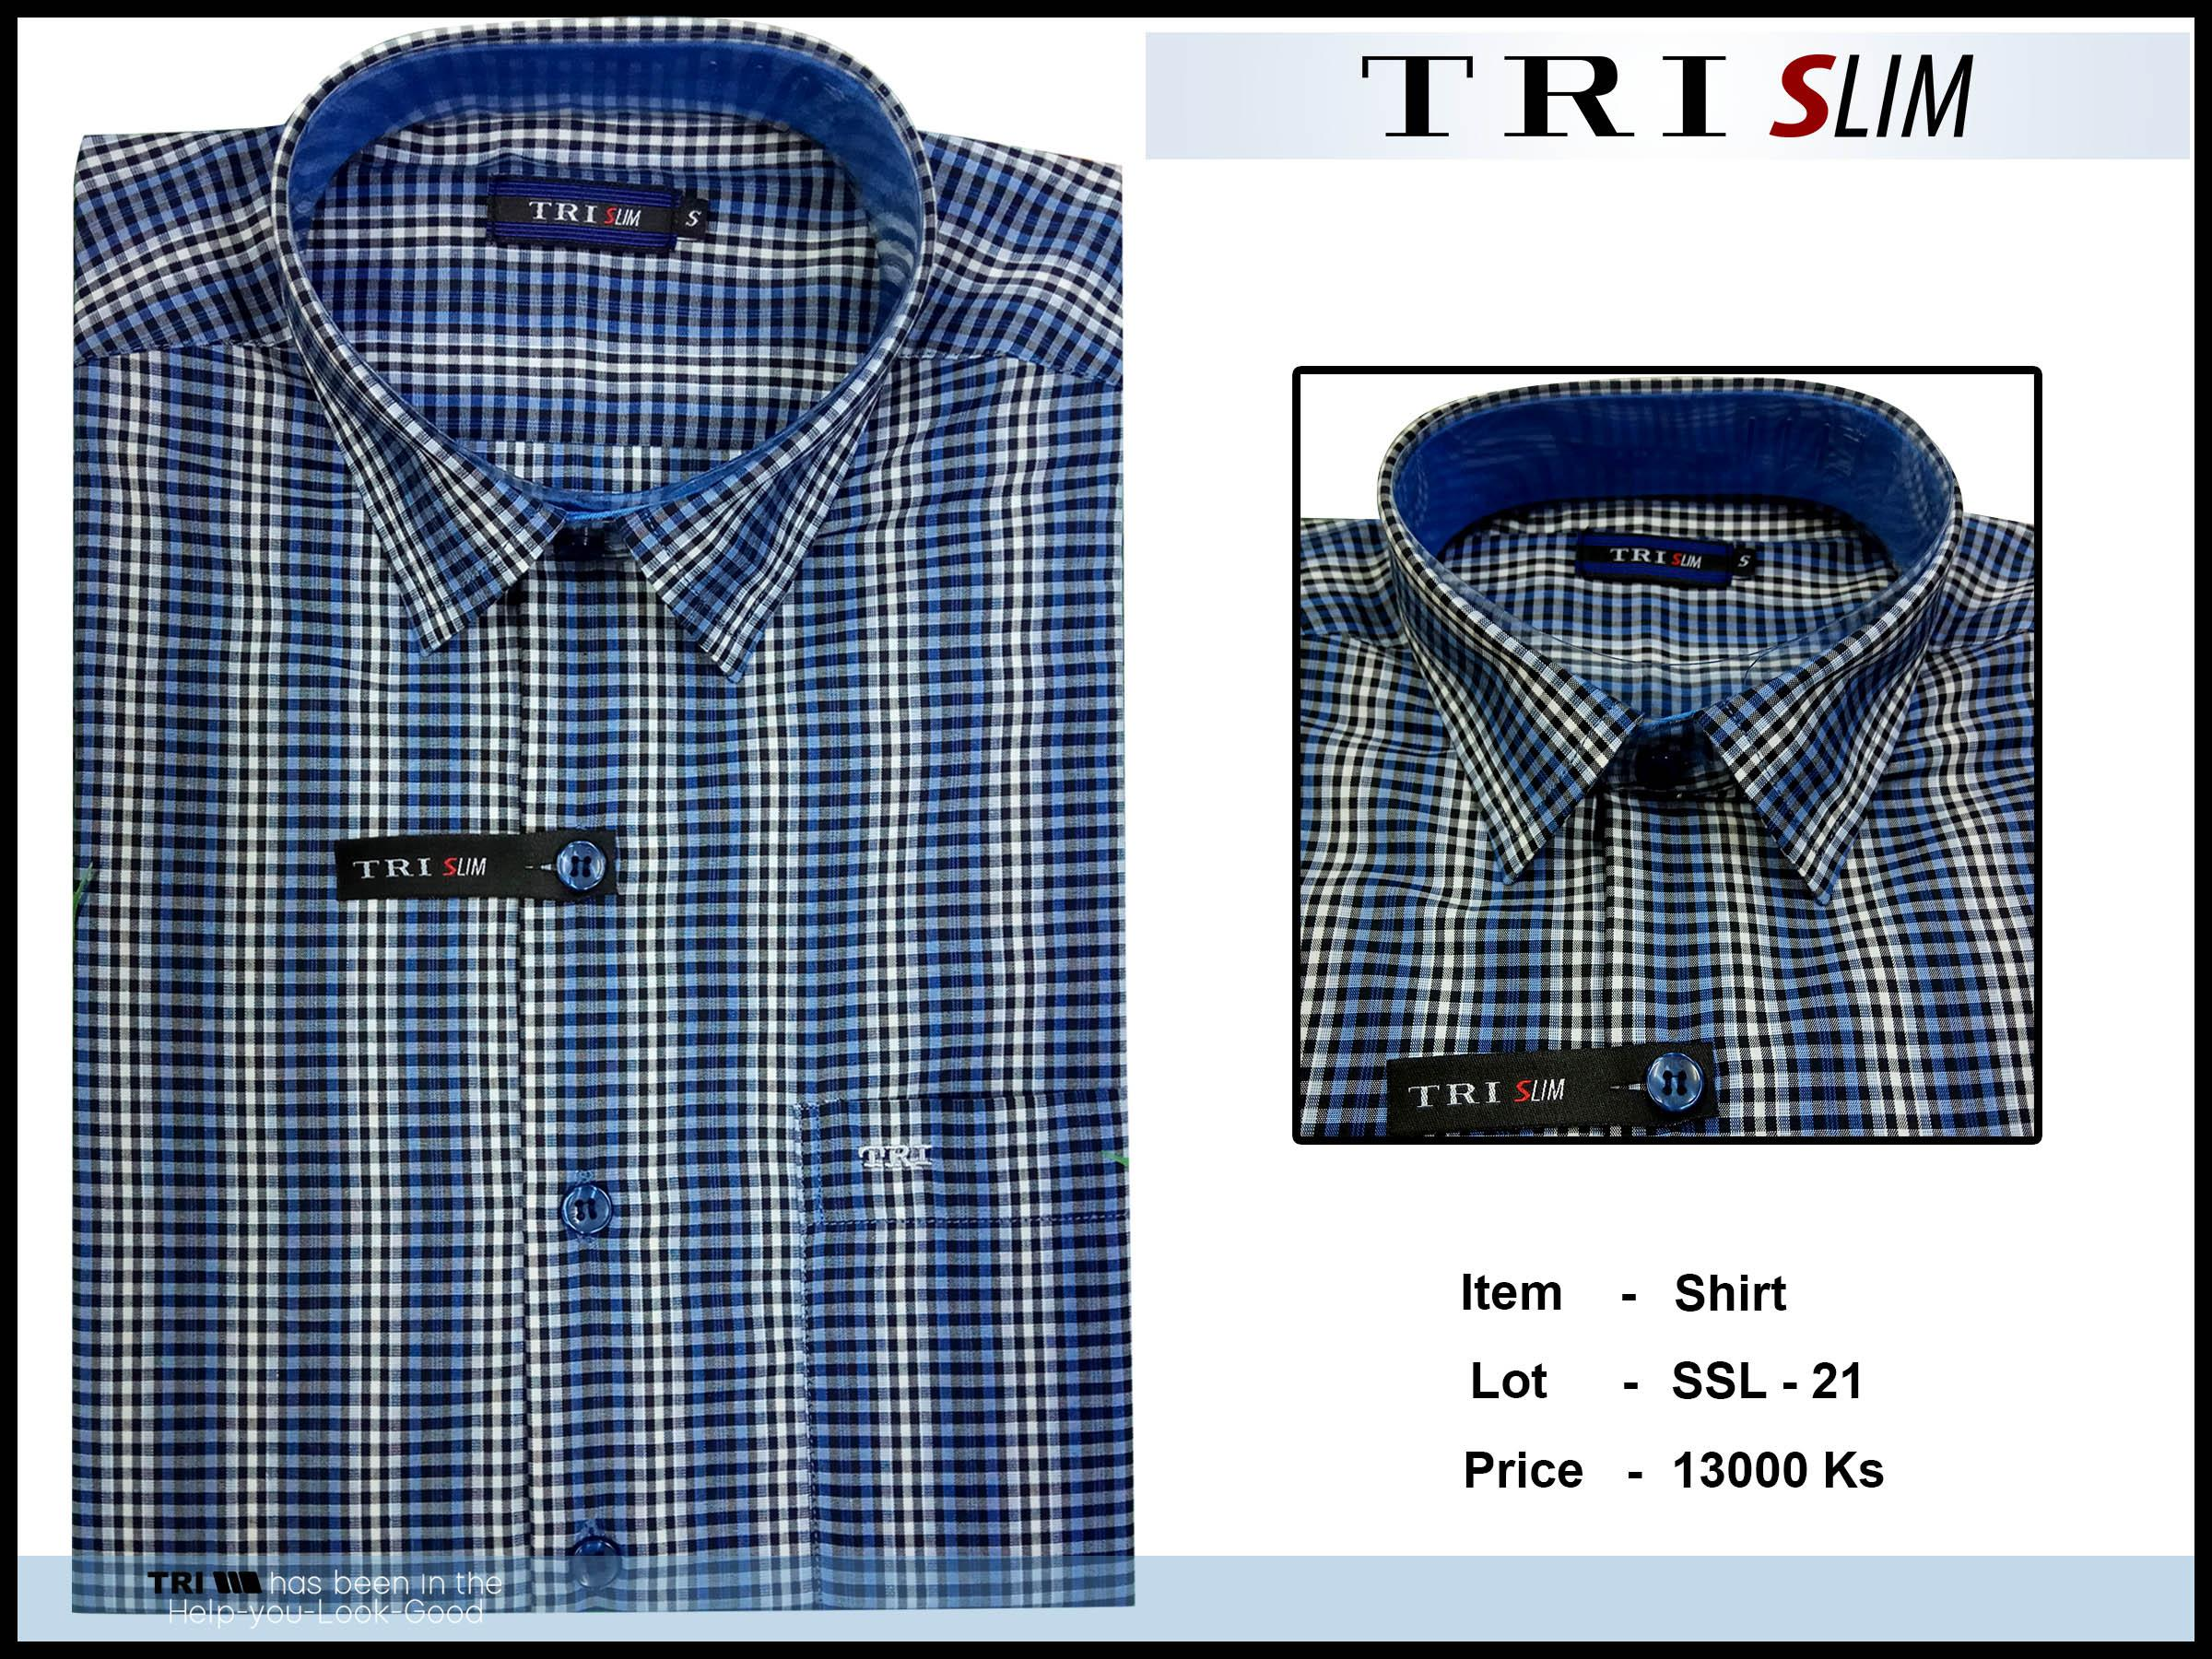 Tri Slim Shirt SSL - 21 - 13